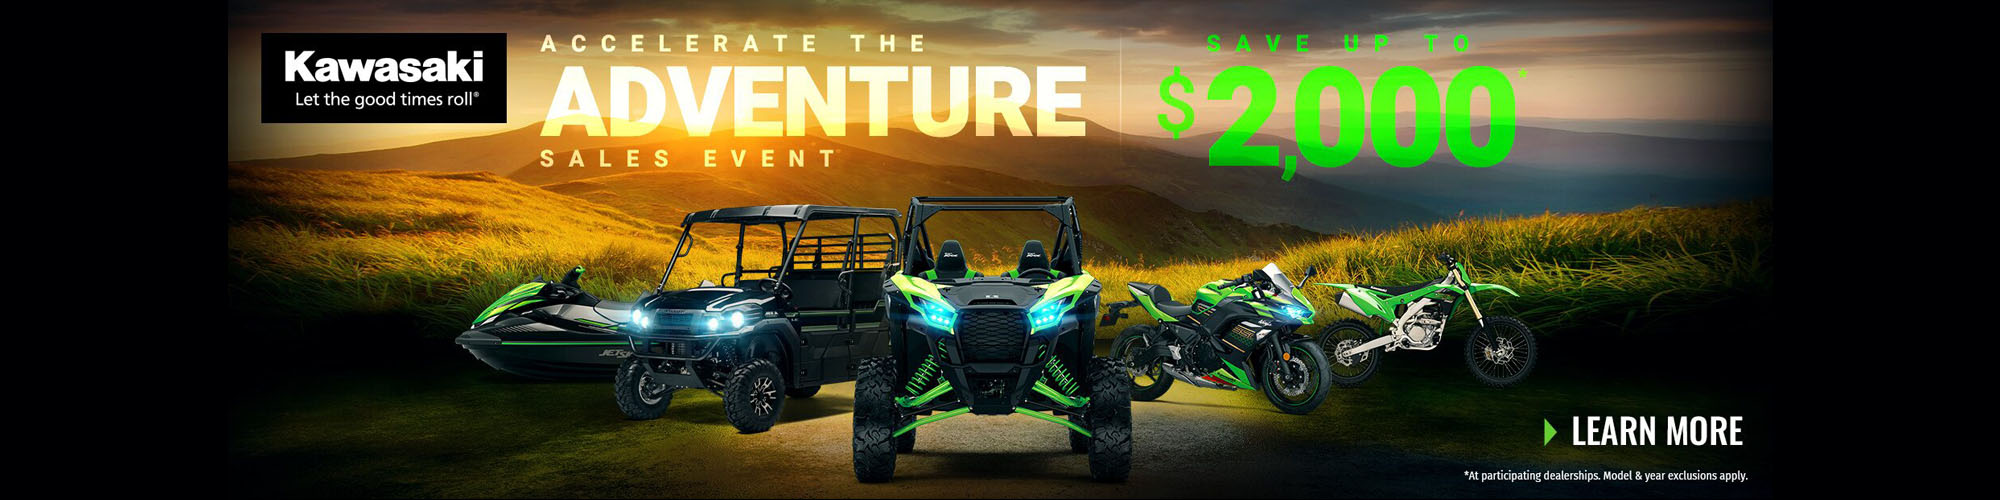 Accelerate The Adventure Sales Event